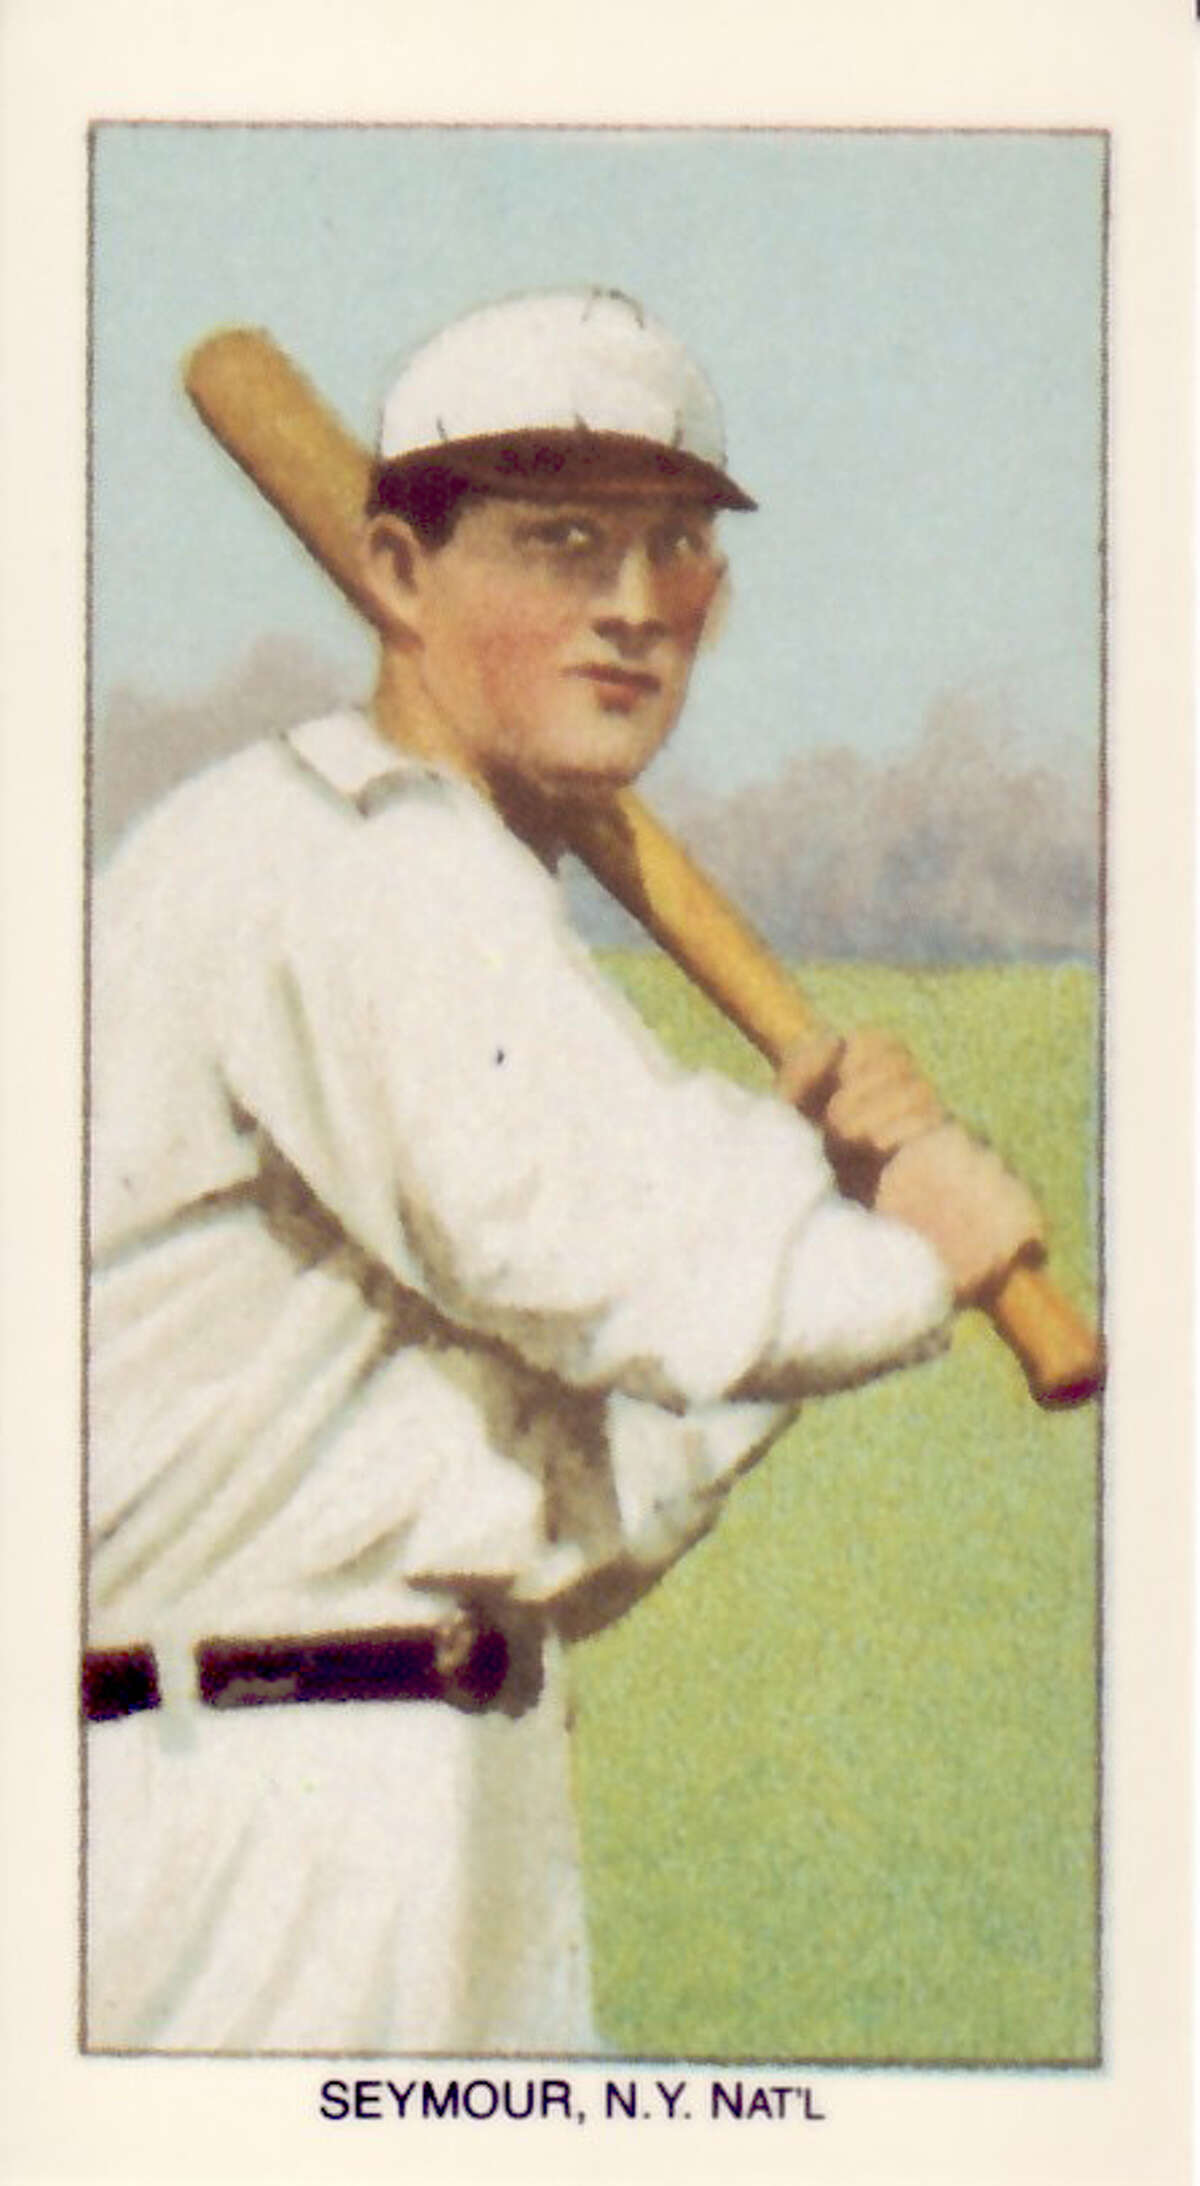 James Bentley ?Cy? Seymour (1878-1919) 1909-1911 T206 White Border tobacco card produced by the American Tobacco Trust. Pulled with permission from